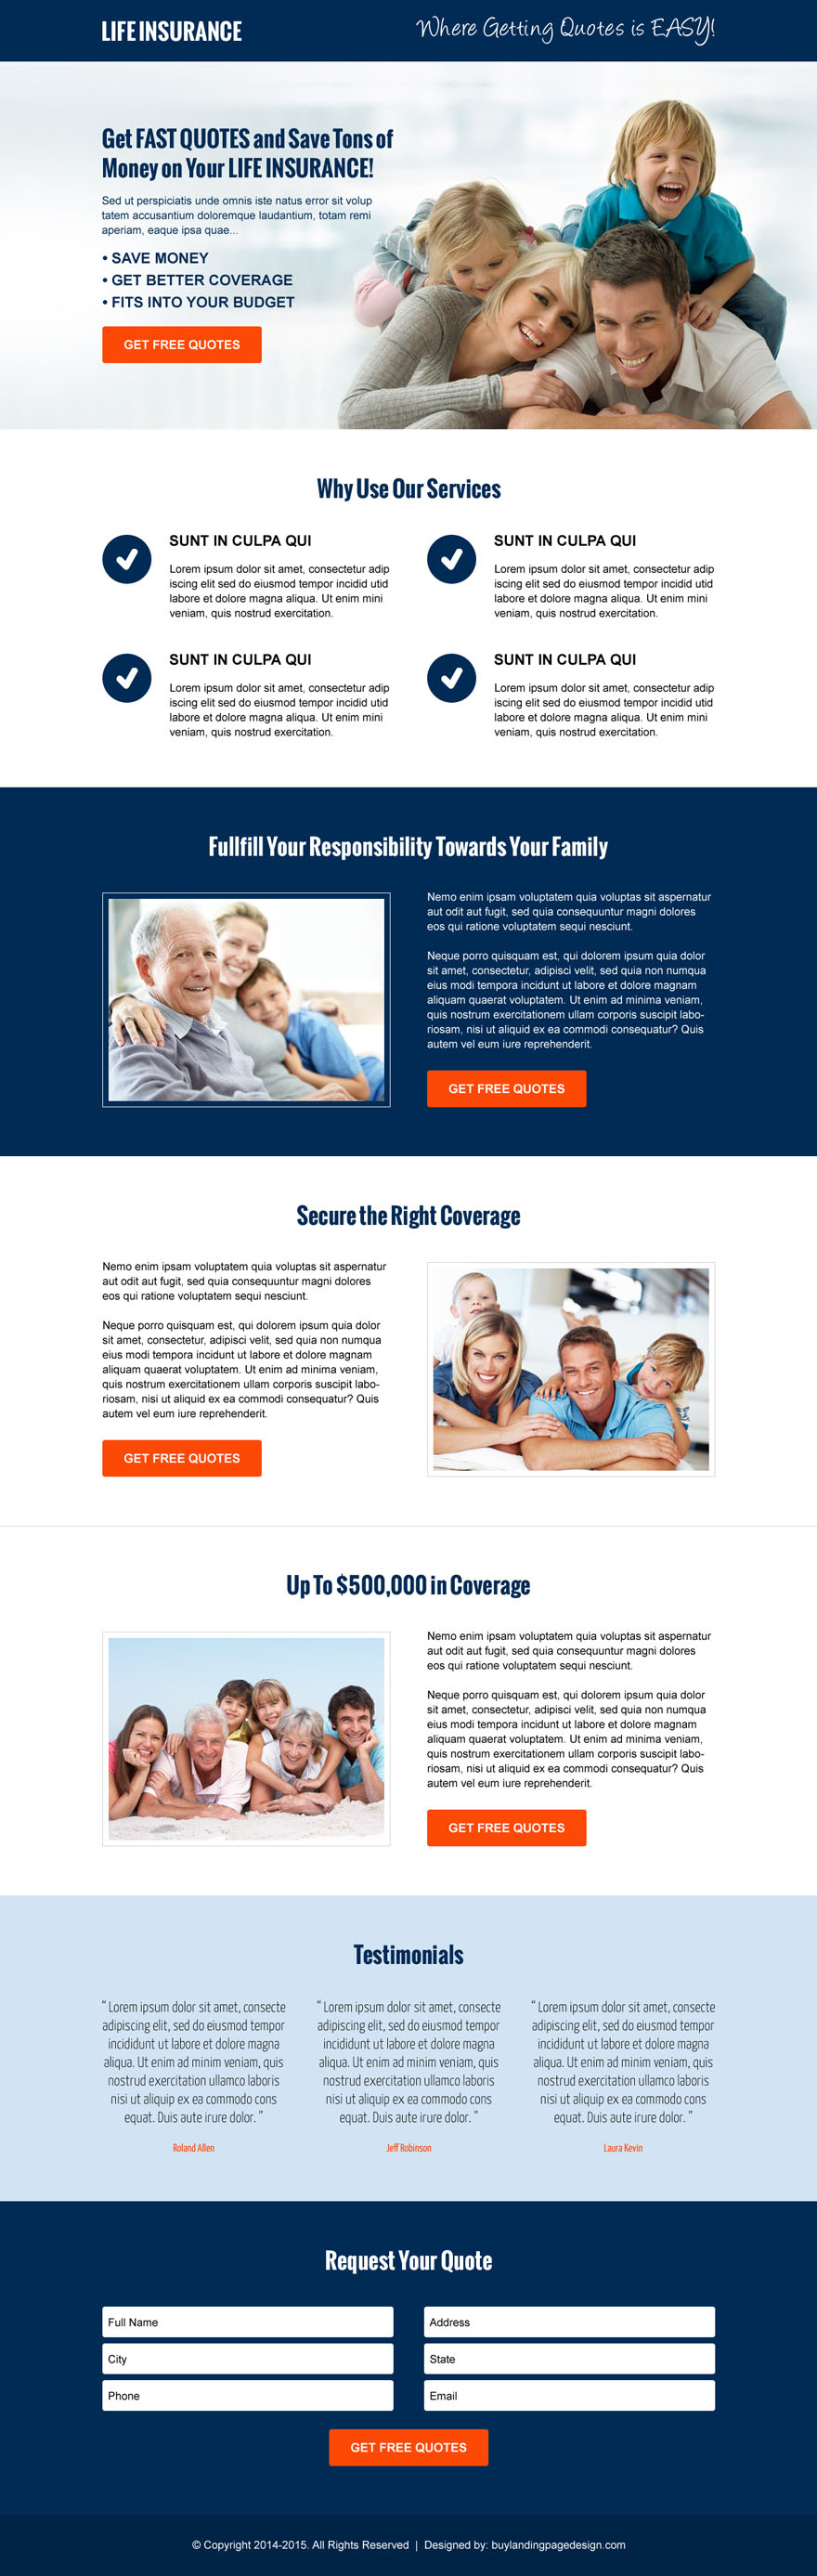 money-saving-life-insurance-quote-cta-and-lead-capture-landing-page-design-template-014